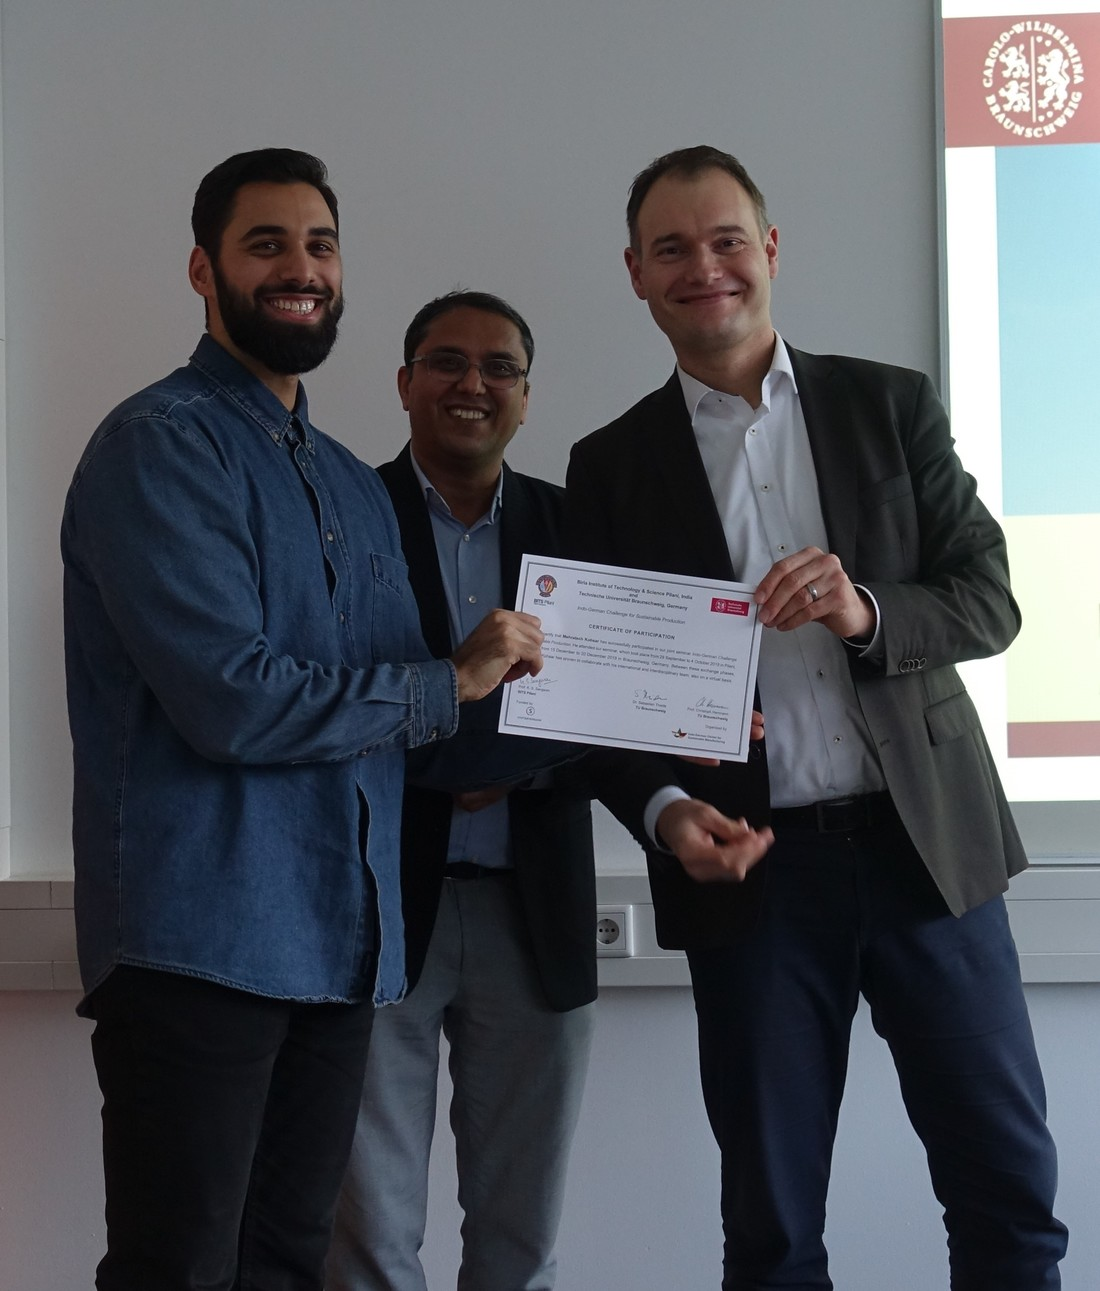 Presentation of Mehratsch\'s certificate